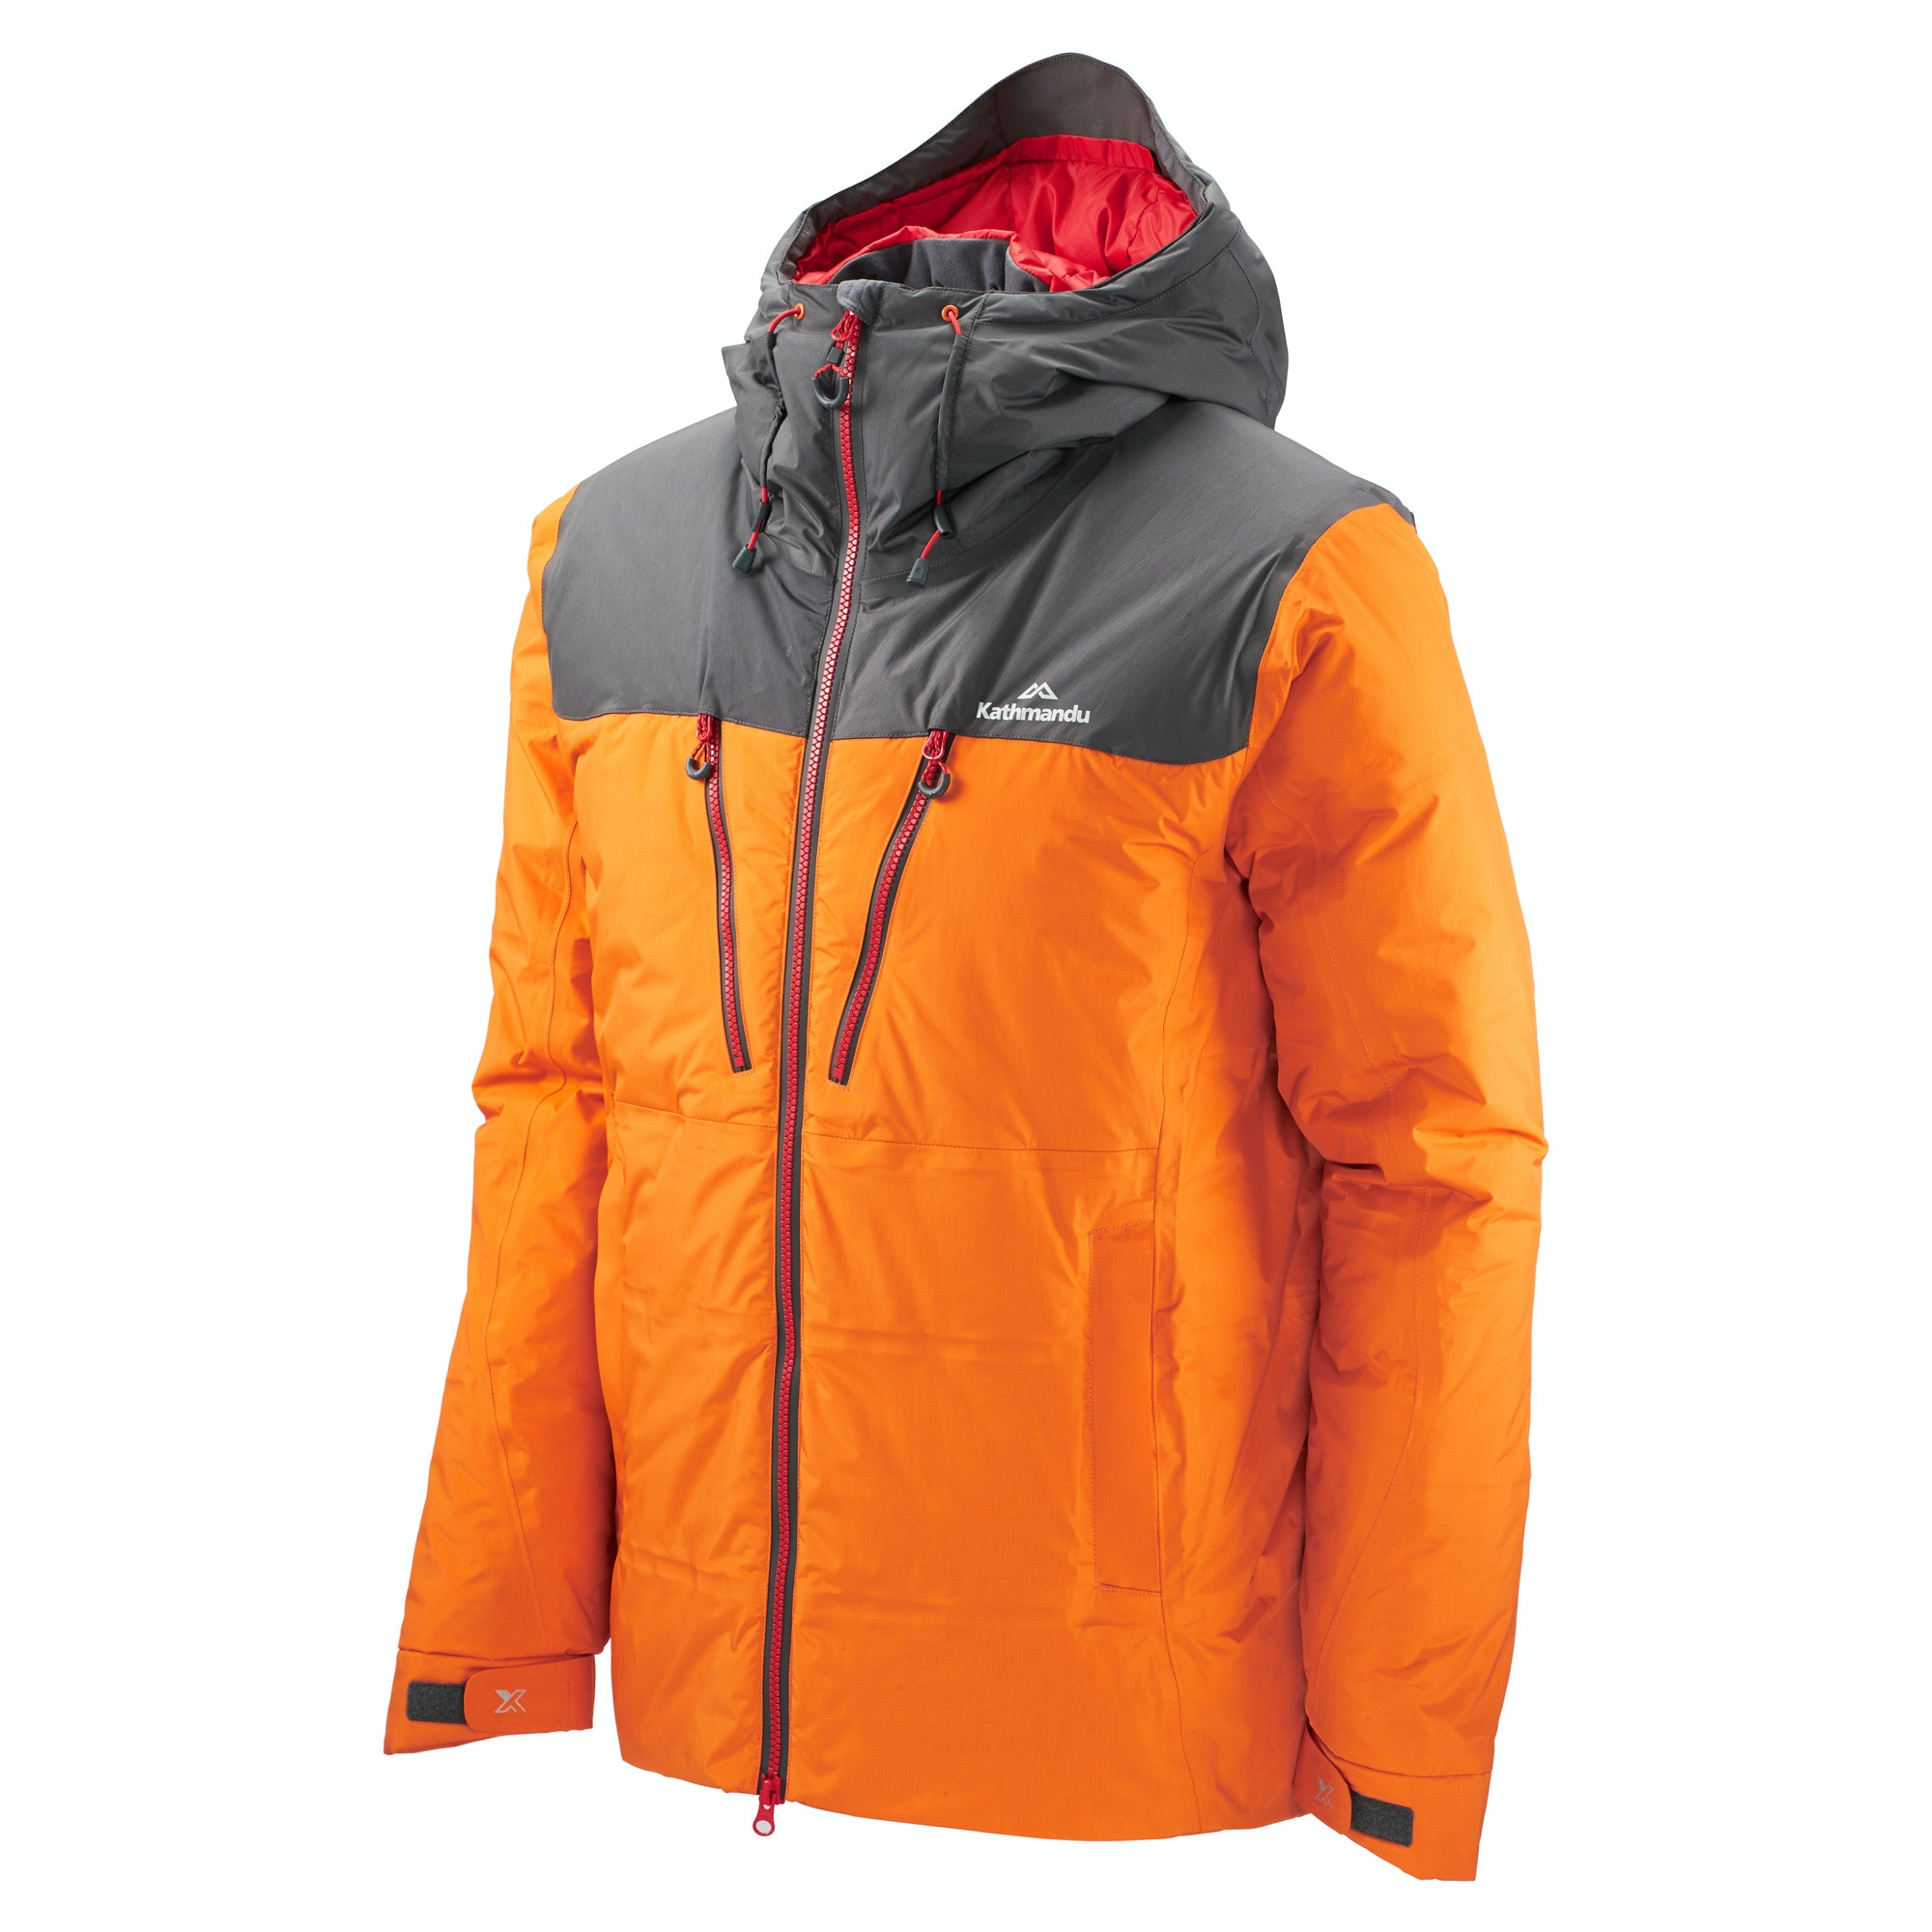 XT driFILL Men's Goose Down Waterproof Jacket - Walk & Hike - Active